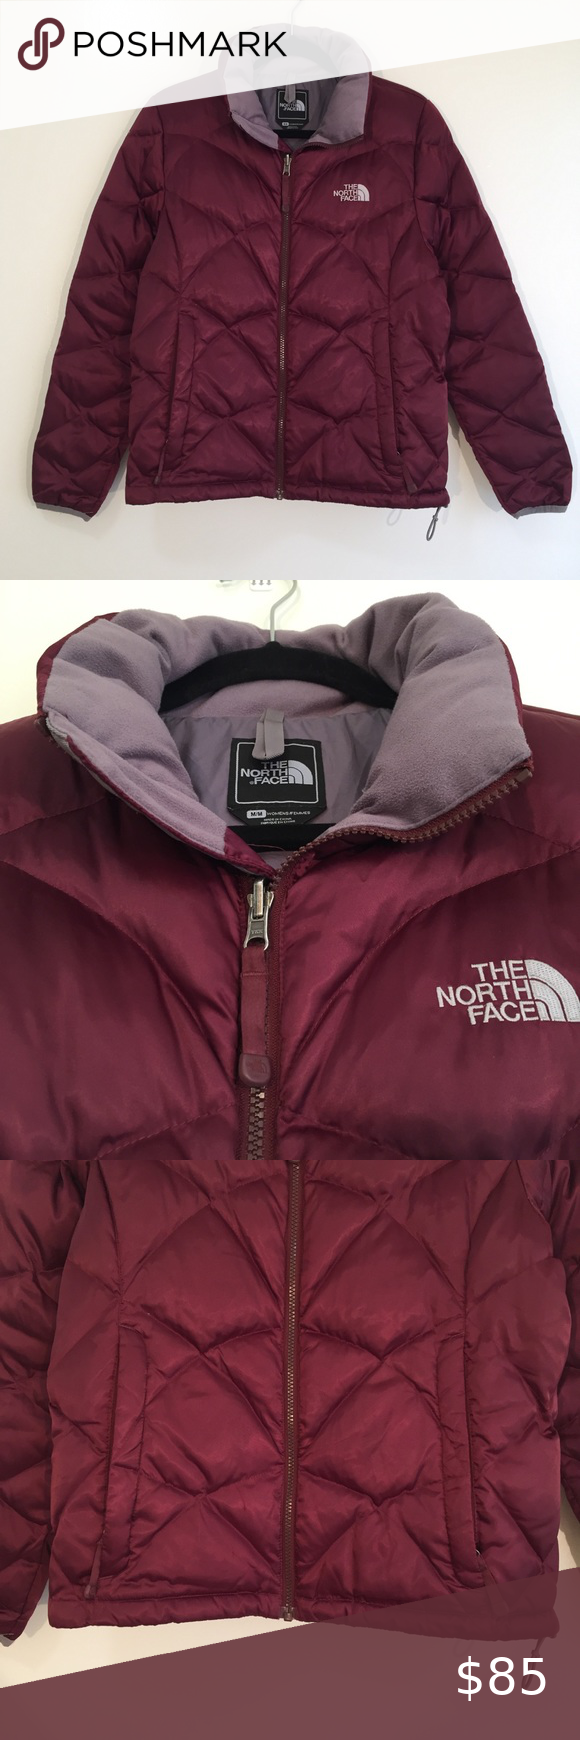 The North Face 550 Fill Down Quilted Puffer Jacket Quilted Puffer Jacket Jackets Burgundy Jacket [ 1740 x 580 Pixel ]